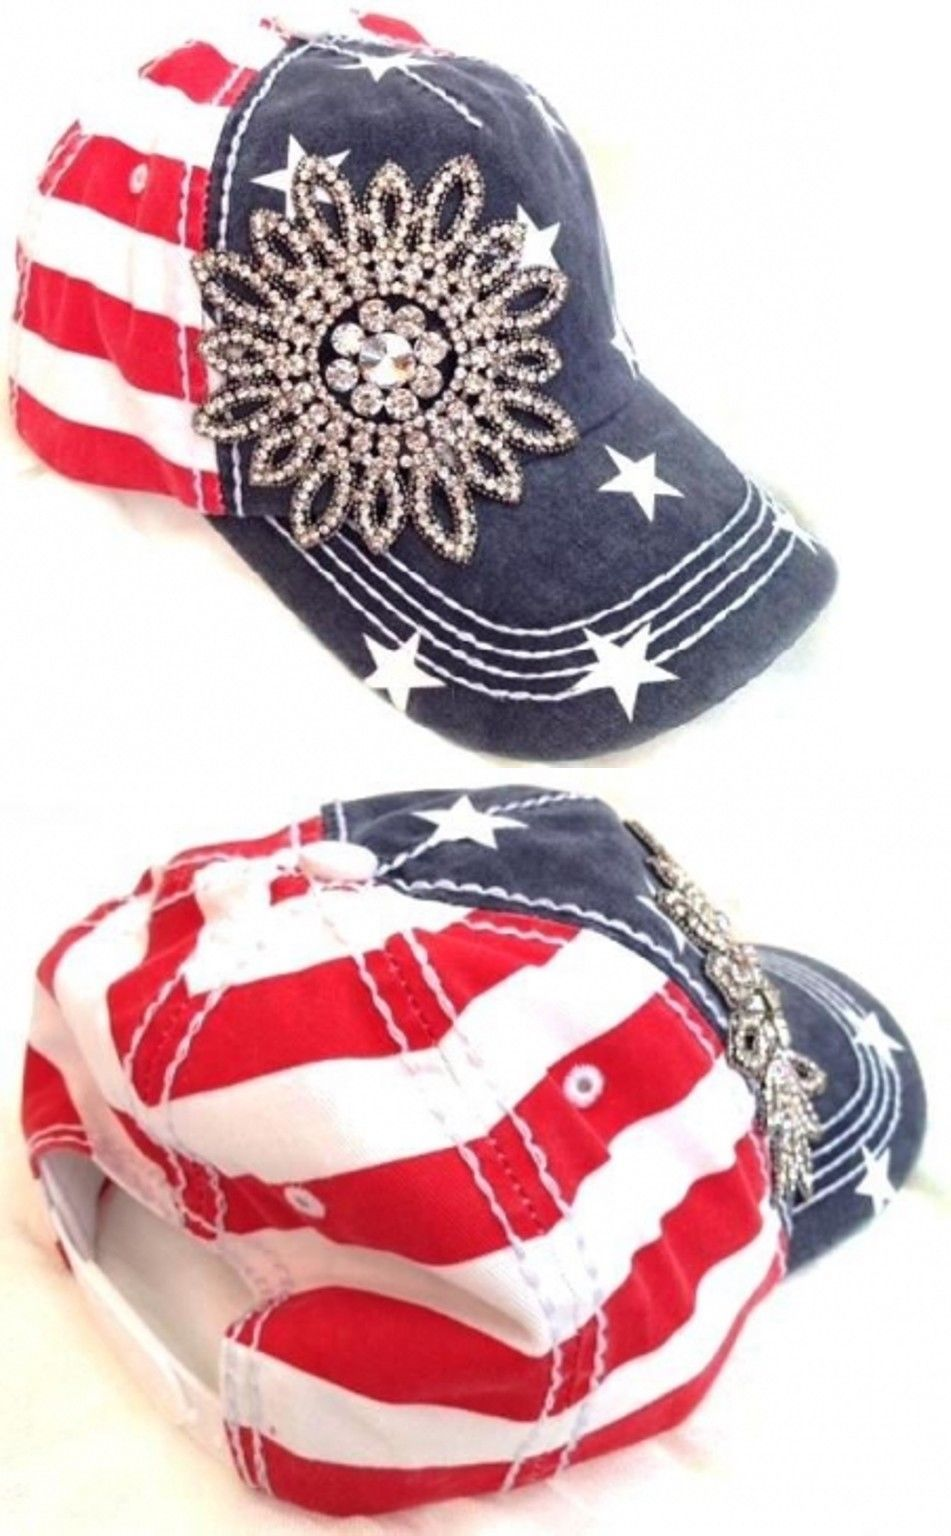 Hats 45230  Olive And Pique American Flag Patriotic Bling Flower Baseball  Cap New -  381b926be22